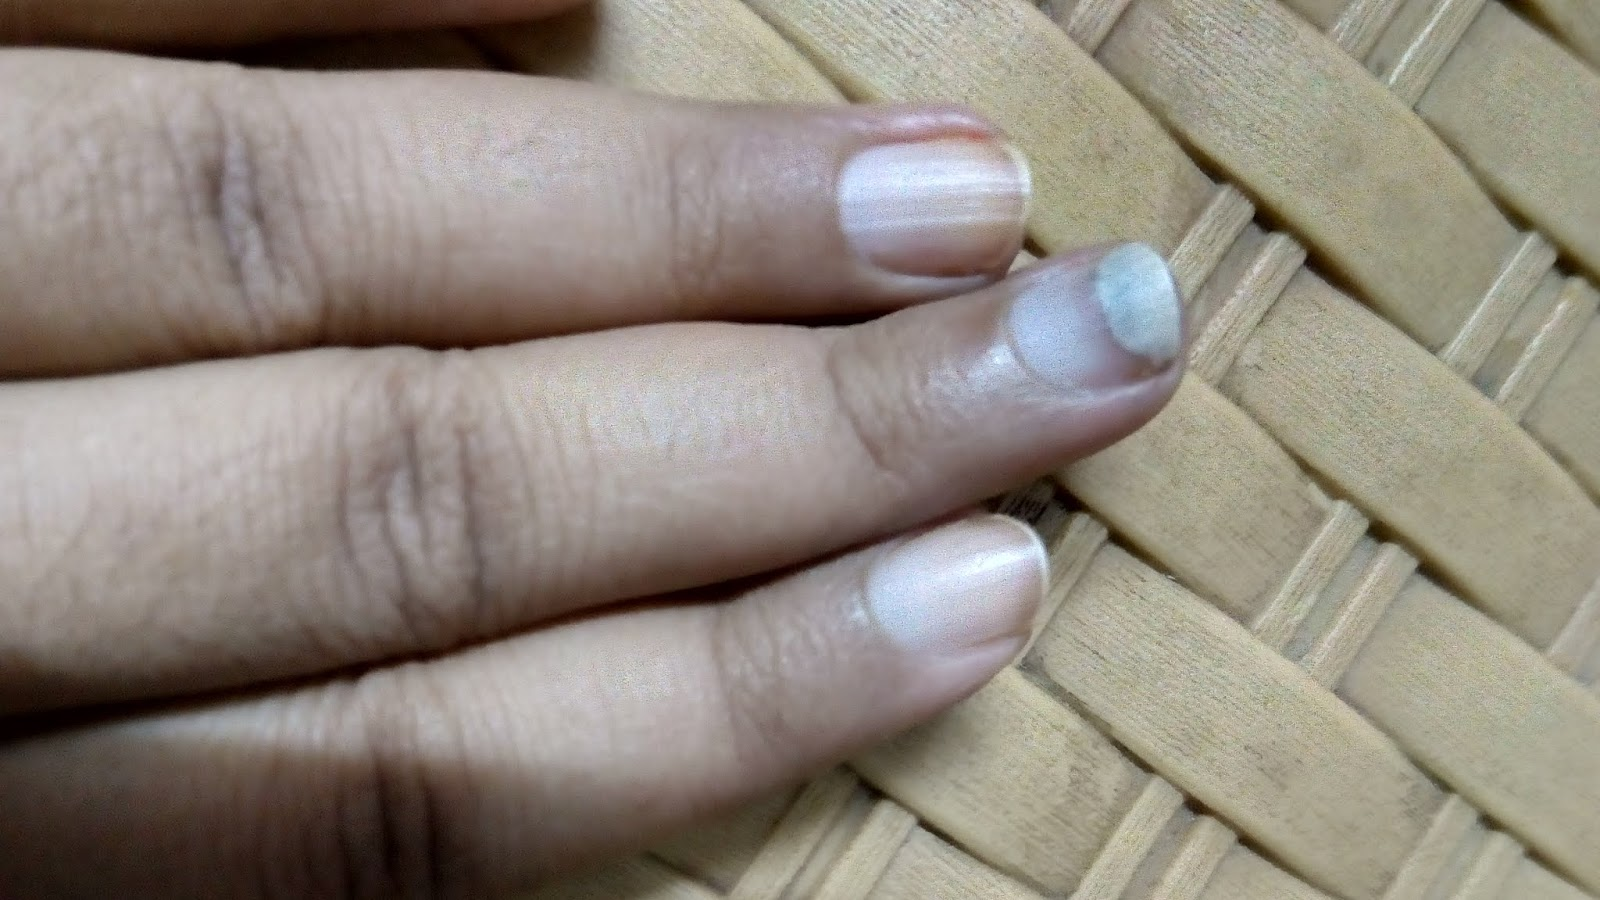 Surprising Facts I Found Out About Myglamm Nail Polish Two Of Your Kind